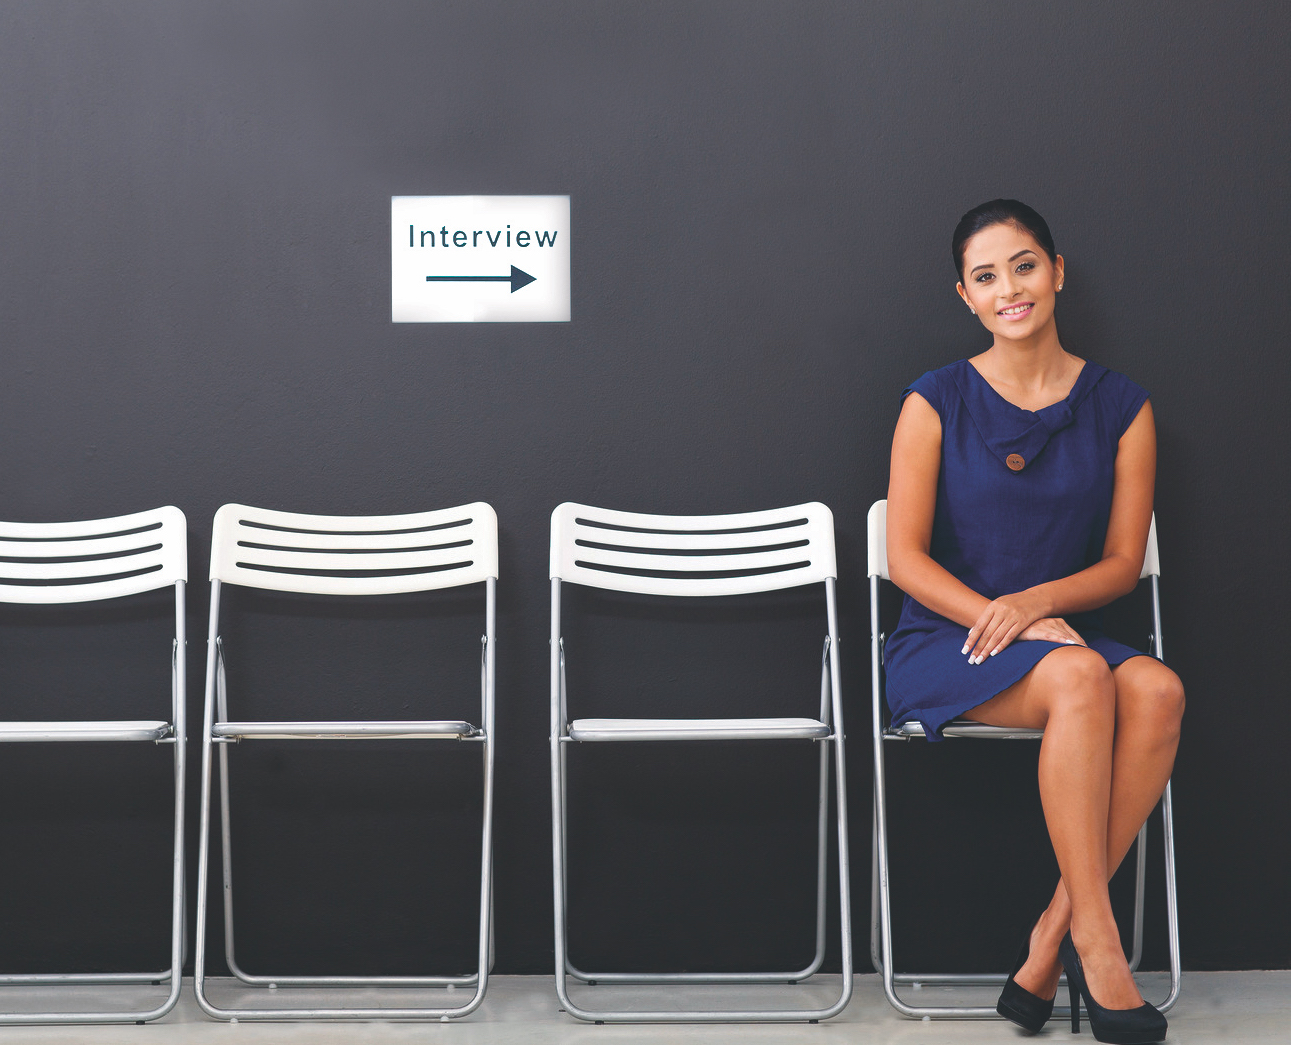 woman sitting in a row of chairs